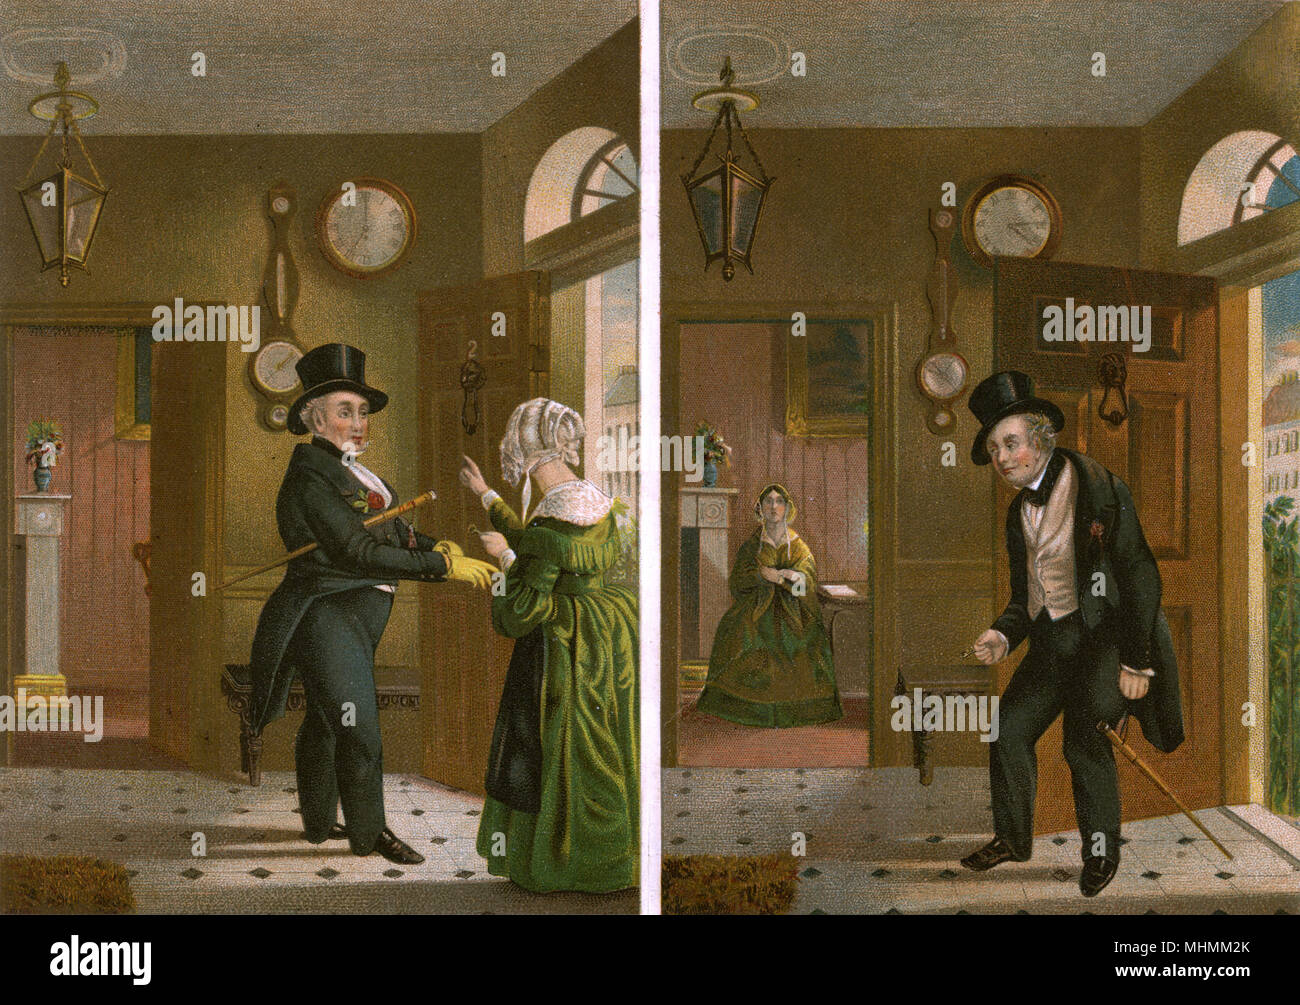 Despite being told not to stay out drinking by his wife, a husband returns several hours later in an intoxicated state, with his wife waiting up for him.     Date: mid-19th century - Stock Image